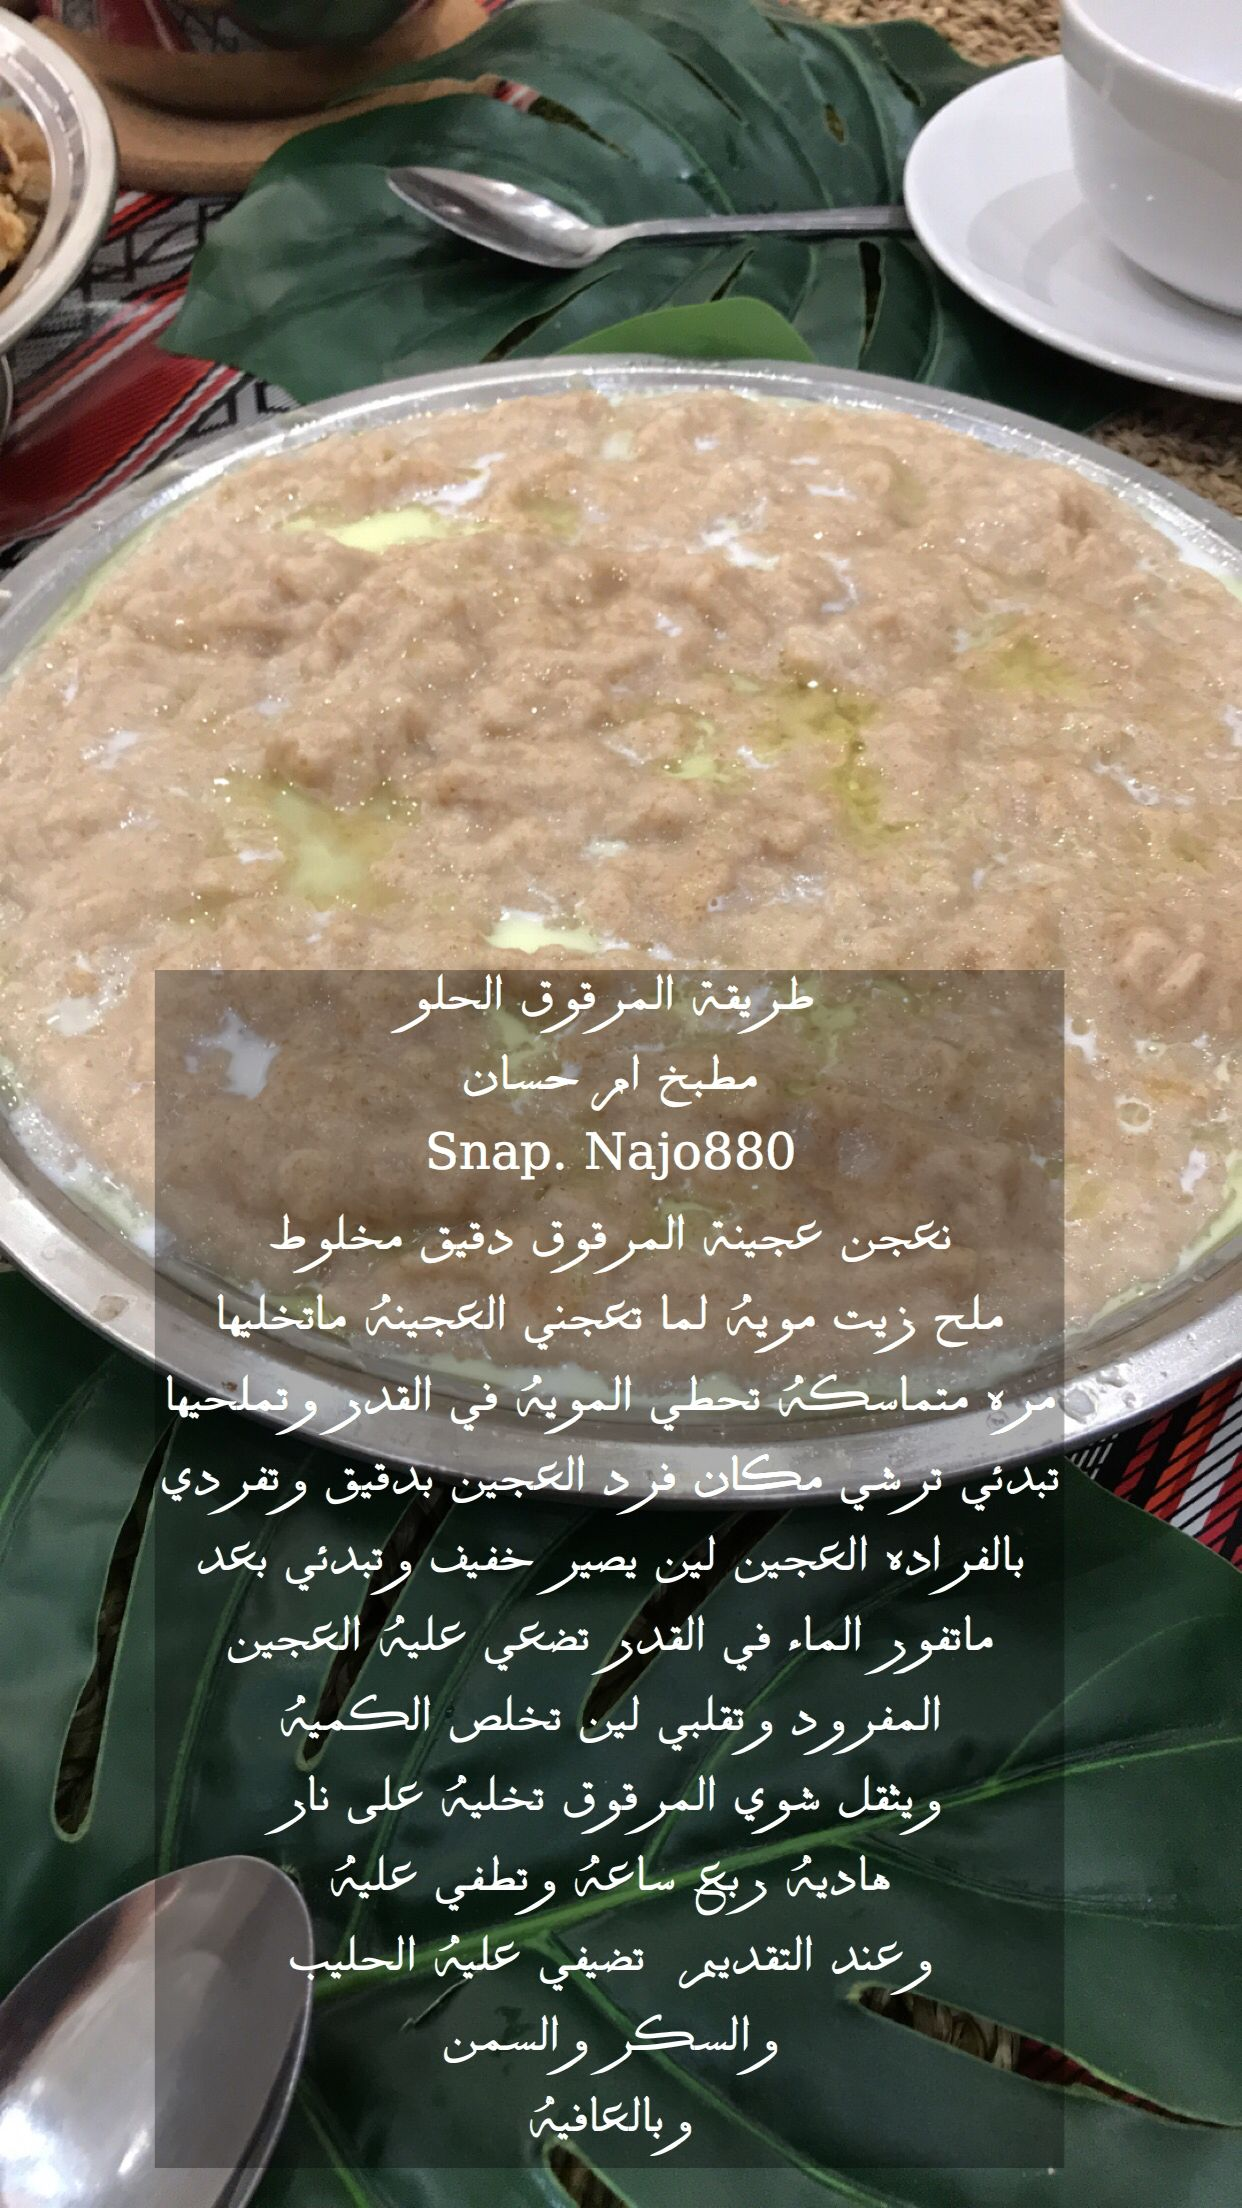 Pin By Najo880 On مطبخ ام حسان